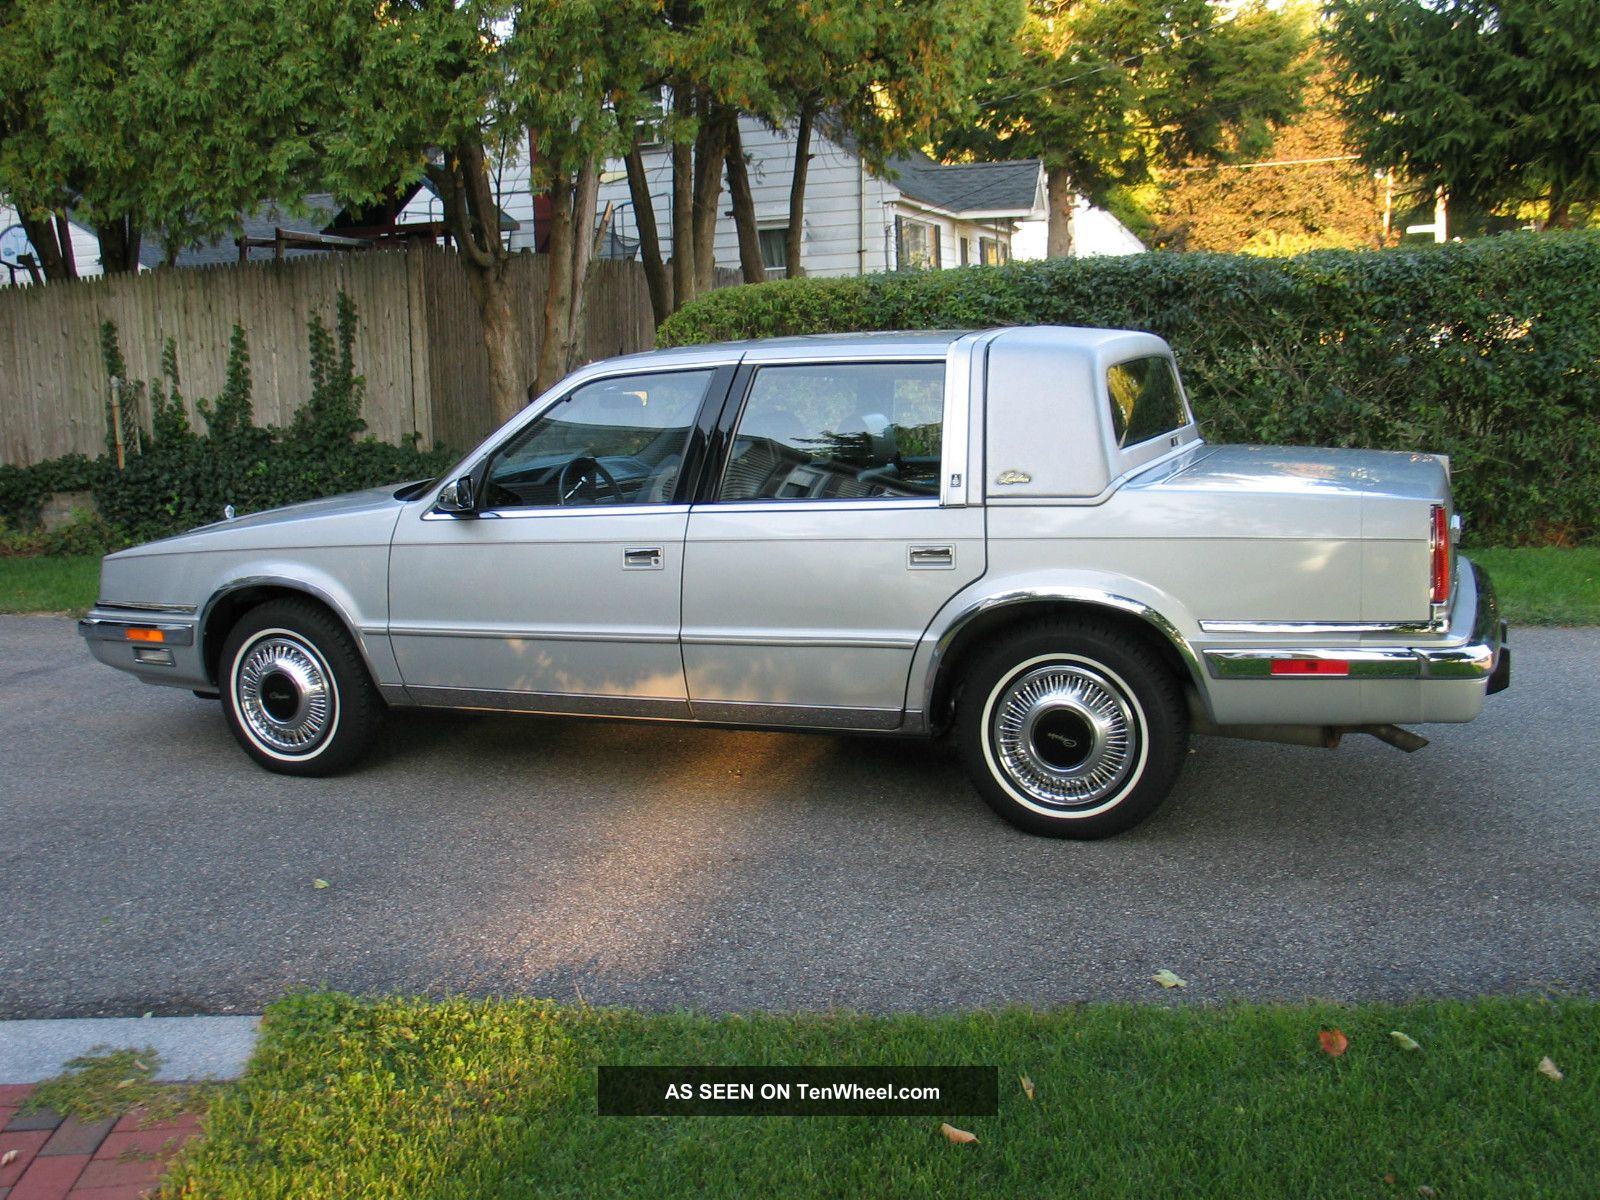 1989 Chrysler Yorker Landau Sedan 4 Door 3 0l Mark